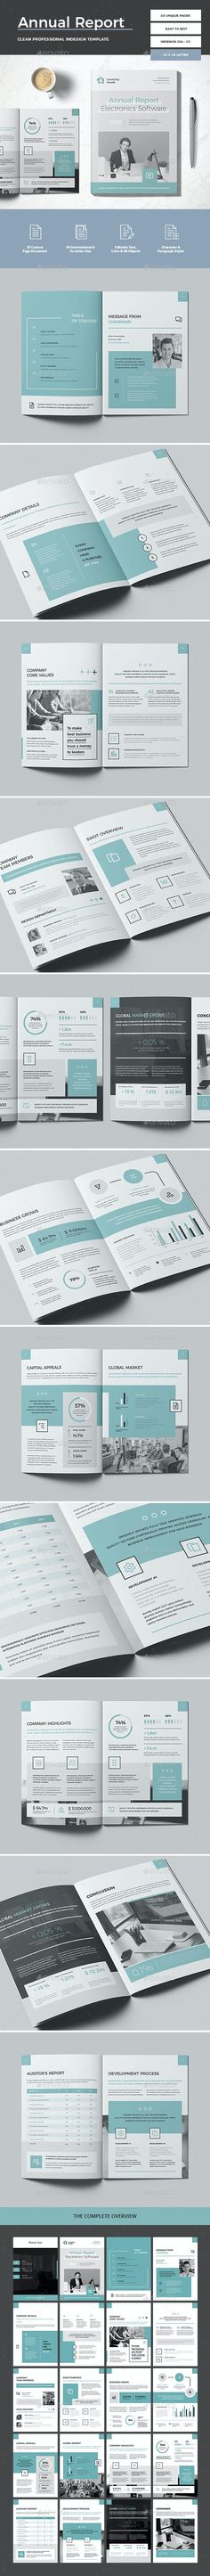 Buy Annual Report by -BeCreative- on GraphicRiver. ANNUAL REPORT: Clean and professional indesign template. Indesign Templates, Brochure Template, Invitation Templates, Cover Design, Newspaper Layout, Annual Report Design, Real Estate Marketing, Things To Come, Wedding Invitation